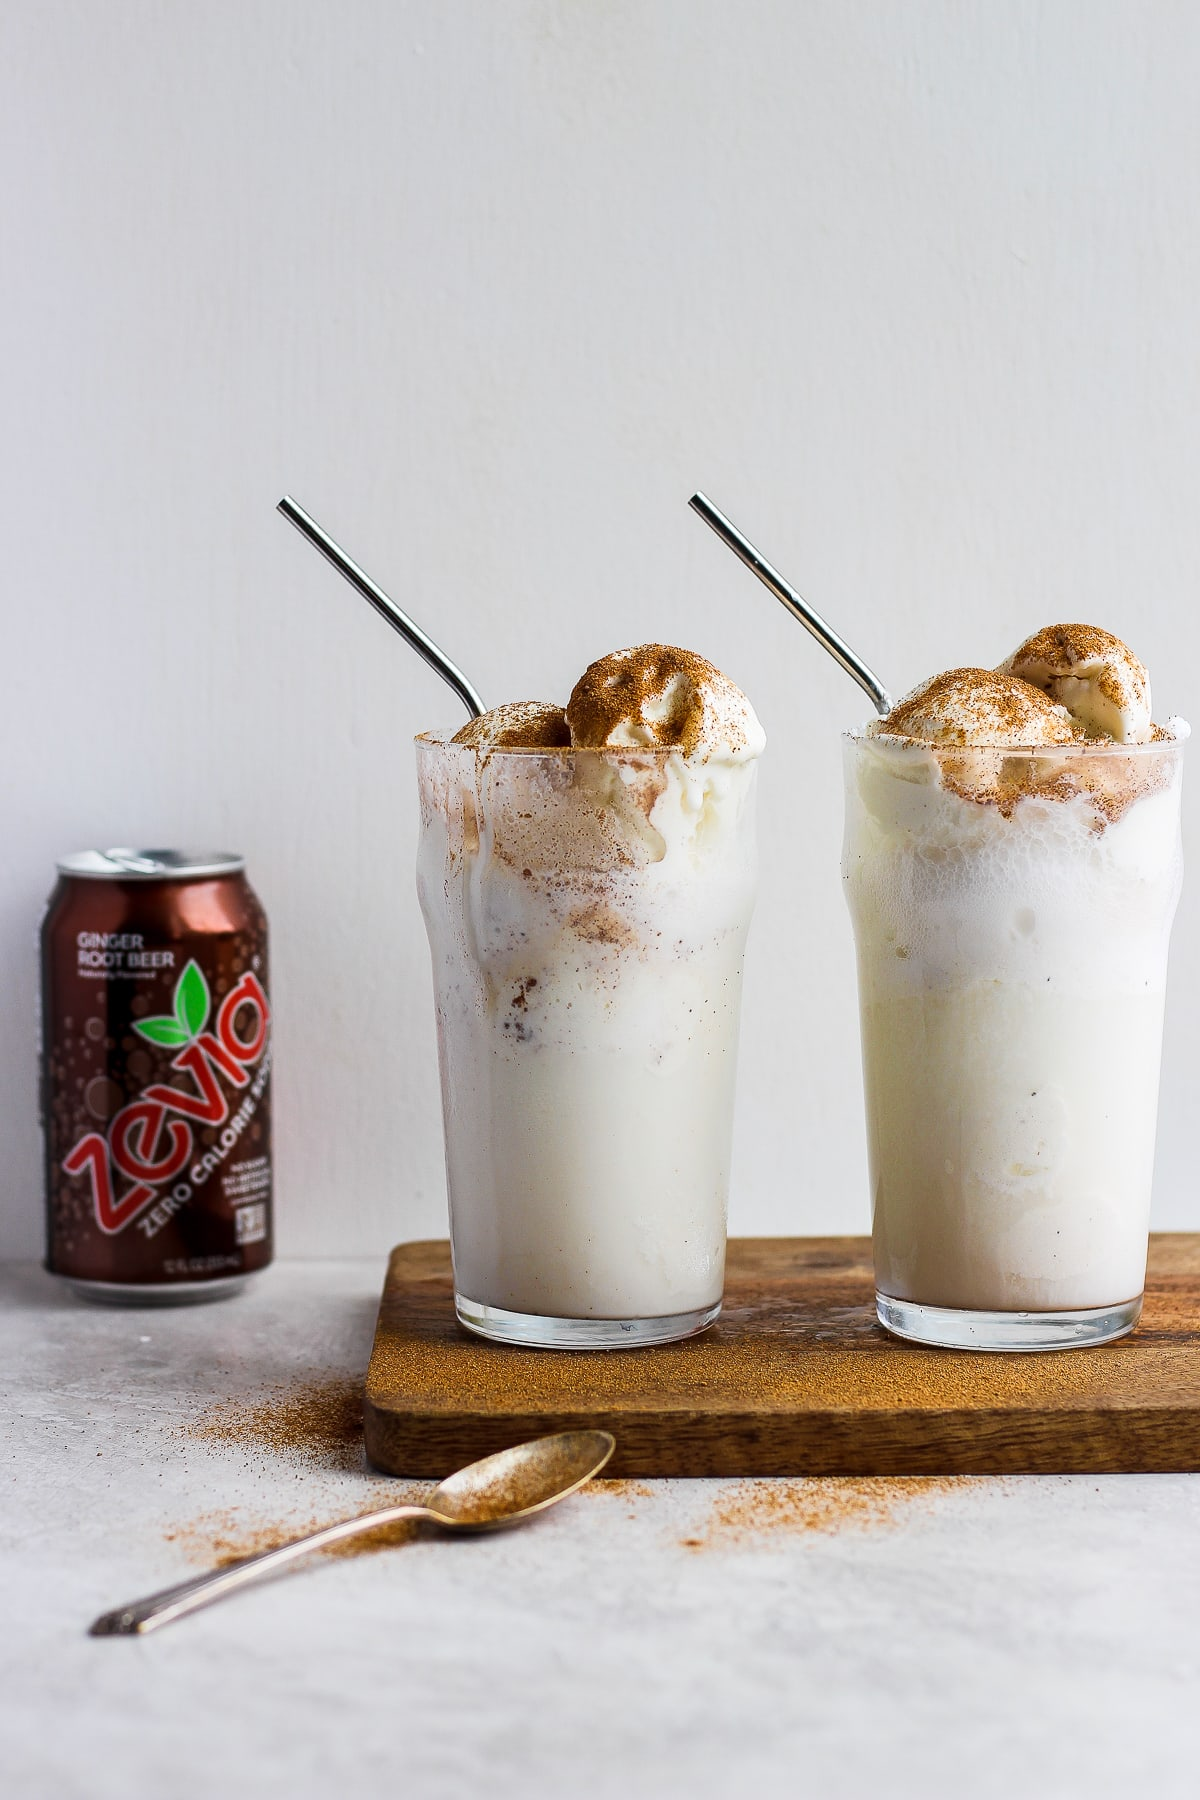 Dairy Free Pumpkin Ginger Root Beer Float - a fun, seasonal root beer float that is dairy-free and tastes just like pumpkin pie! #rootbeer #dairyfree #dessert #fallrecipes